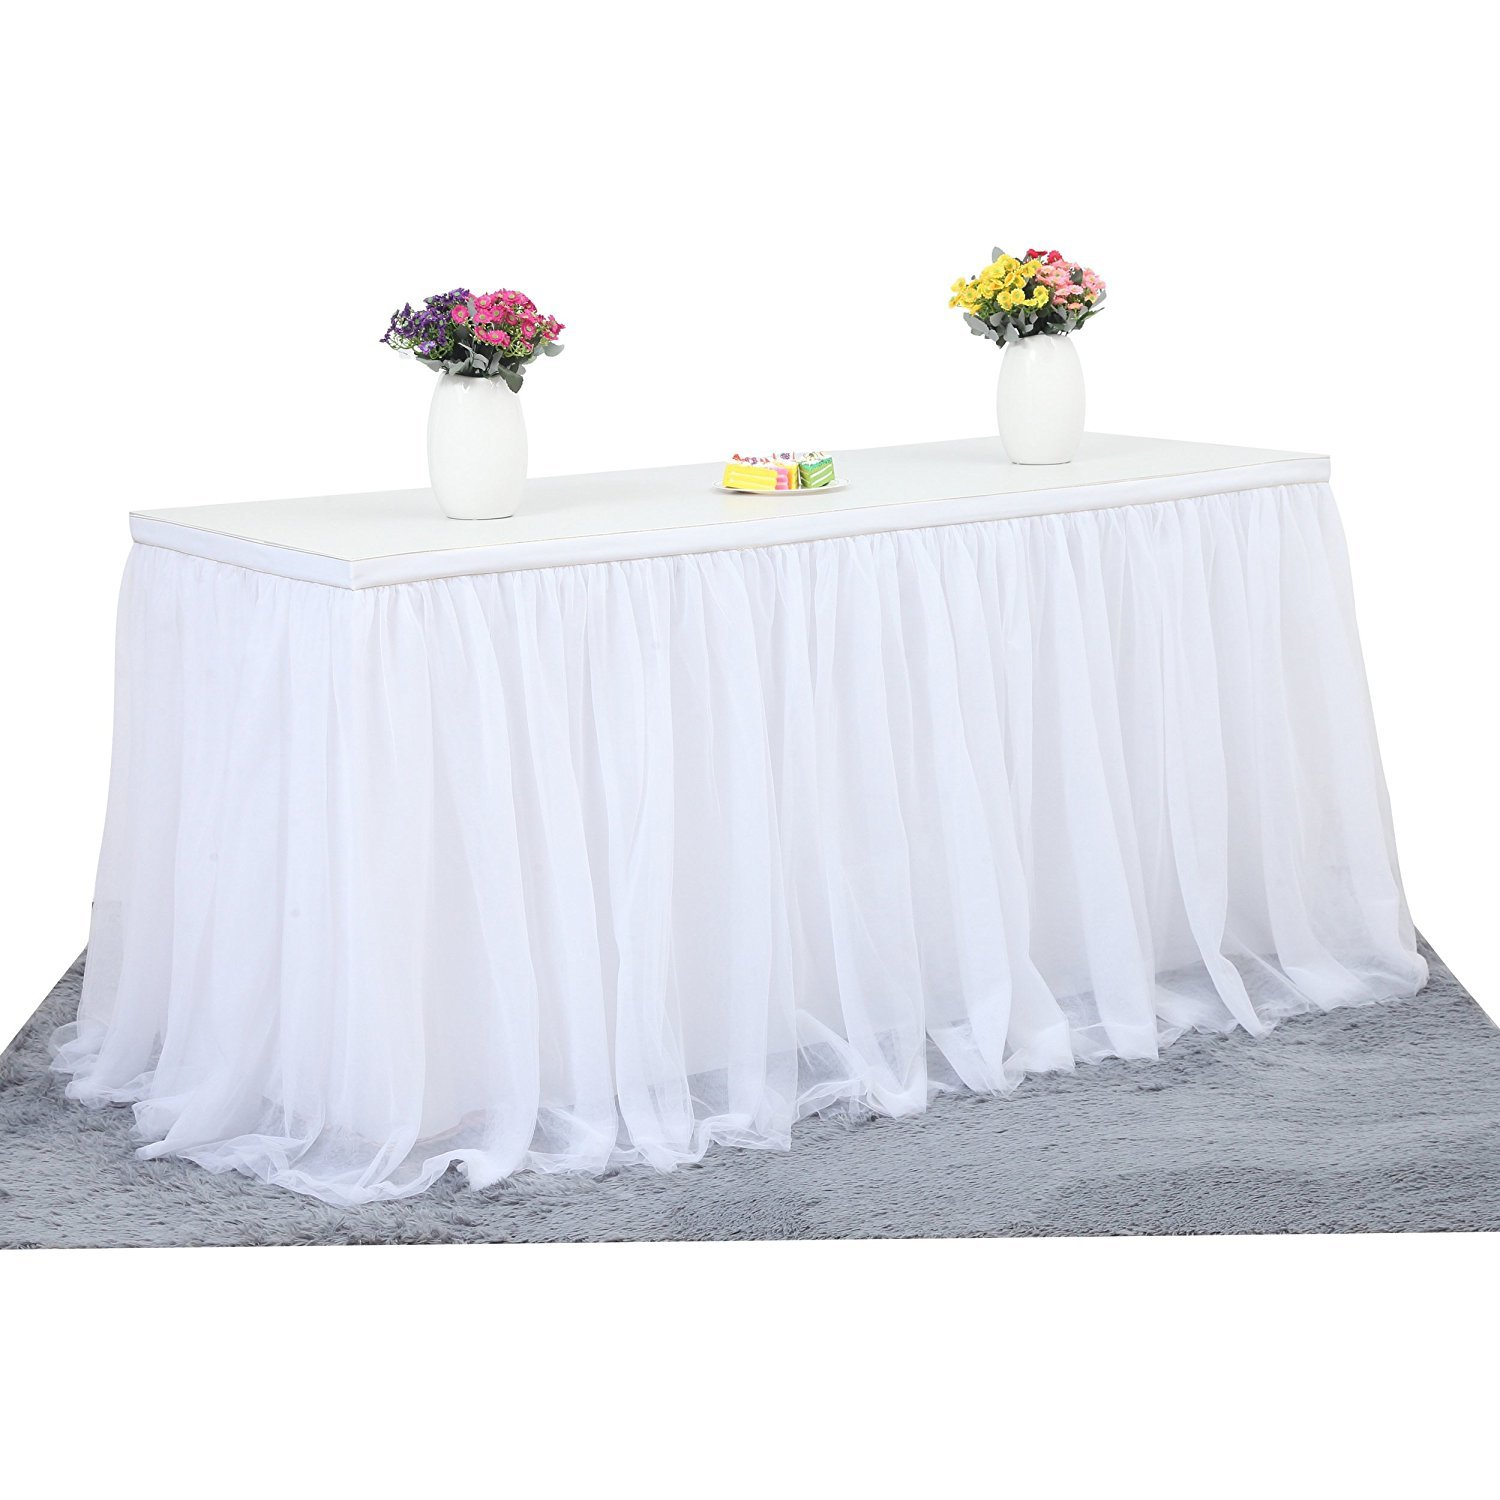 MineSha 6 ft Mesh Fluffy Tutu Tulle Table Skirt White For Party,Wedding,Birthday Party&Home Decoration (L6(ft) H 30in, white)